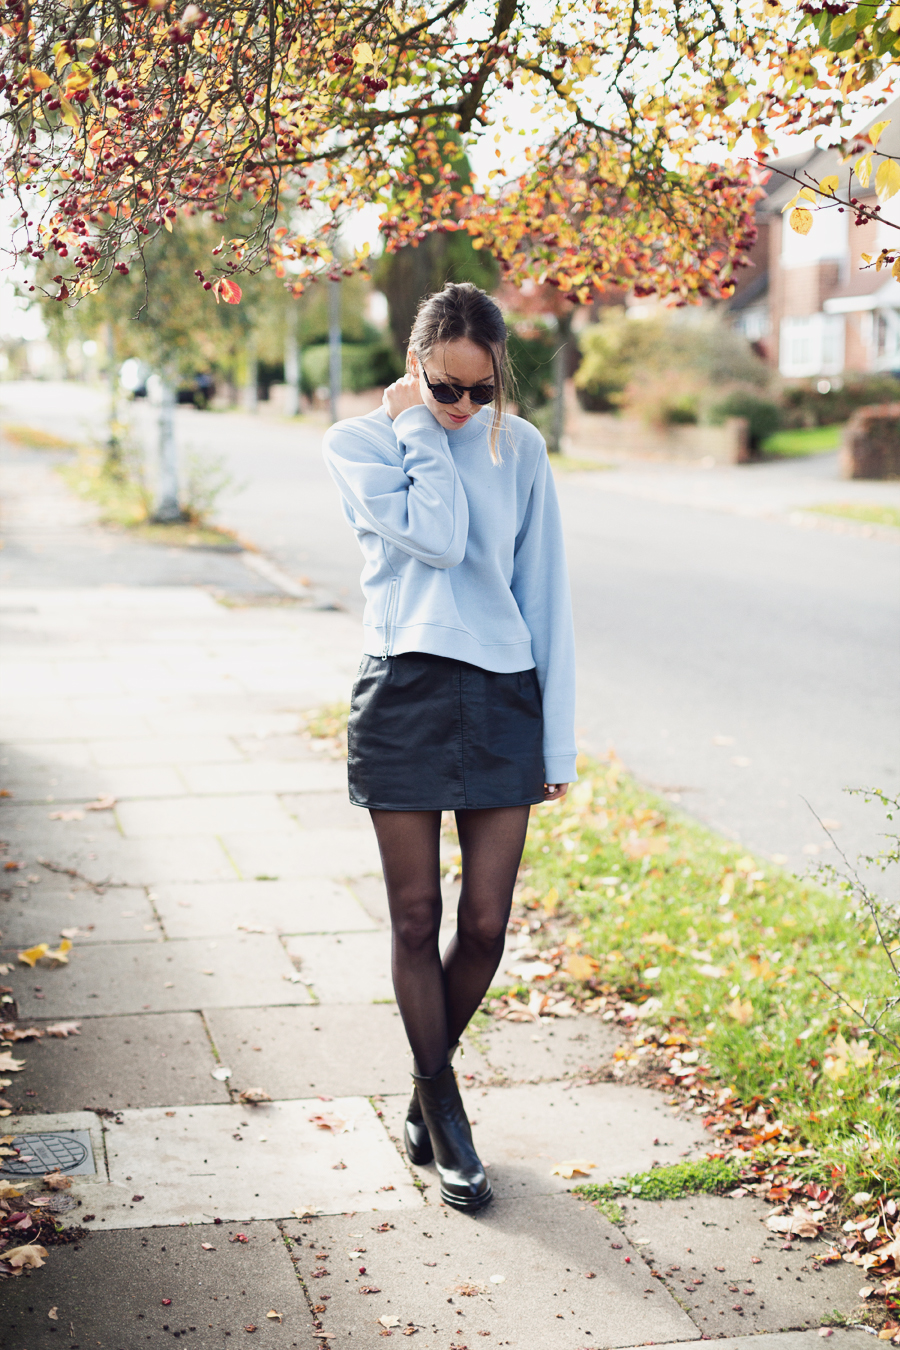 Acne sweatshirt, leather skirt, boots, sunnies